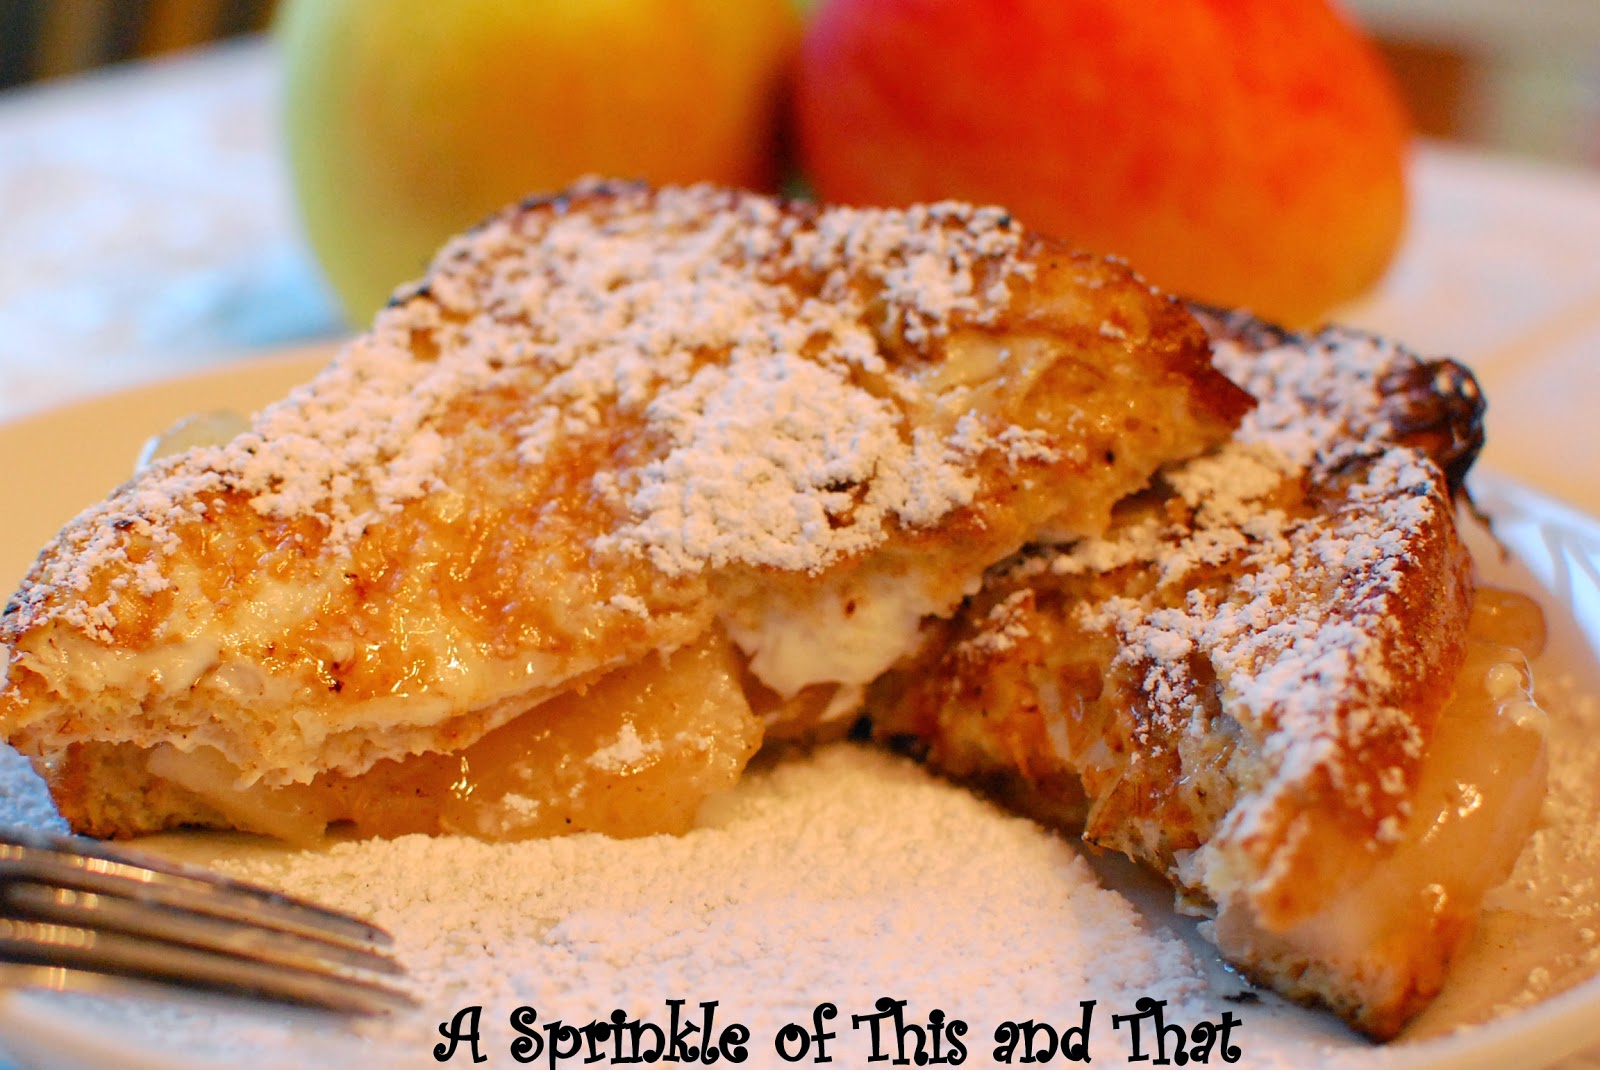 A Sprinkle of This and That: Apple Pie Stuffed French Toast